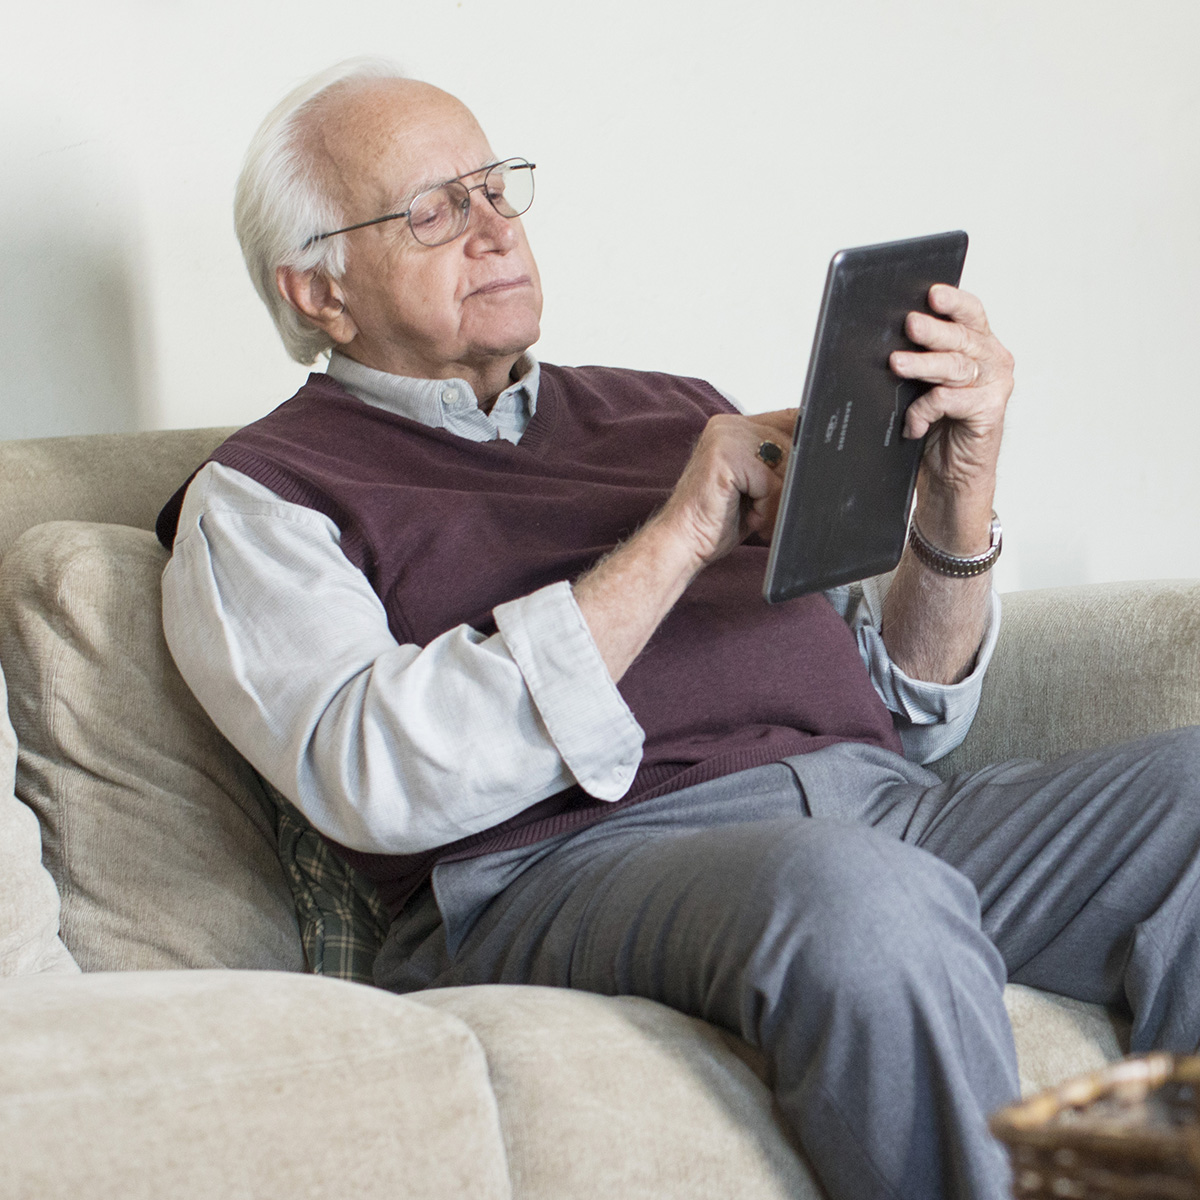 A man sits on a couch and uses a tablet.